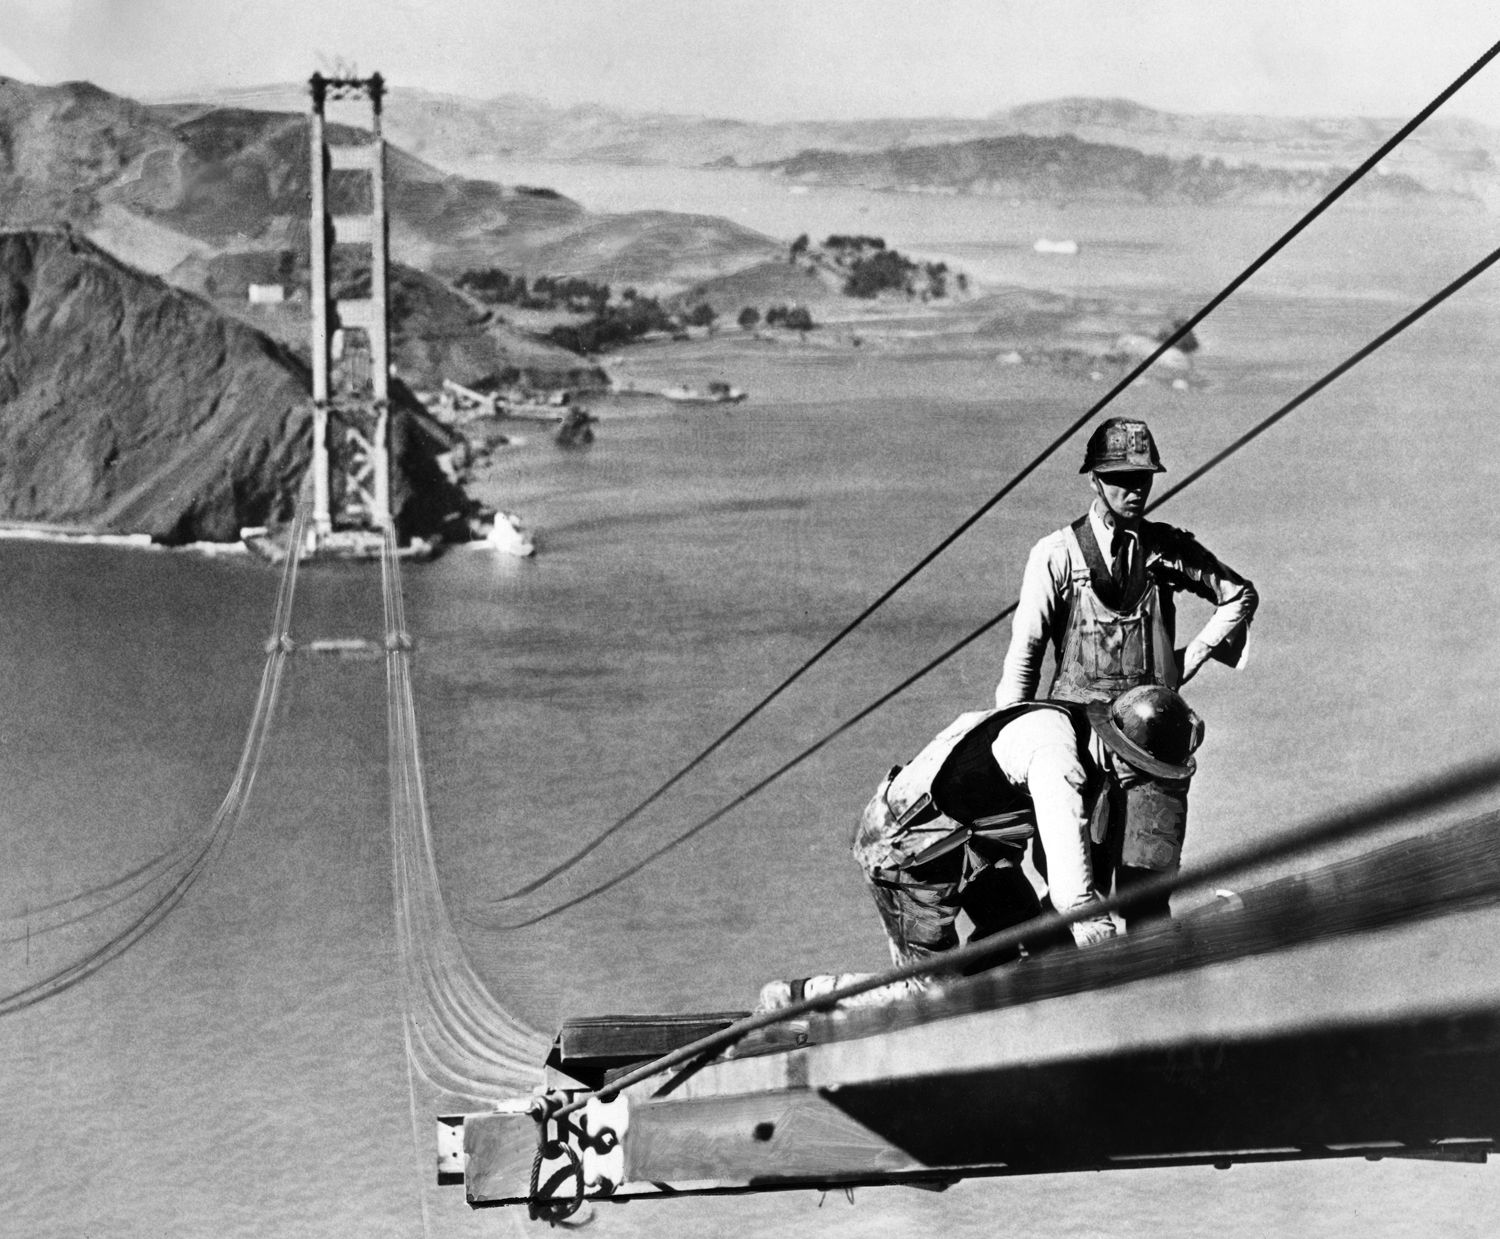 Construction Workers On The Golden Gate Bridge In San